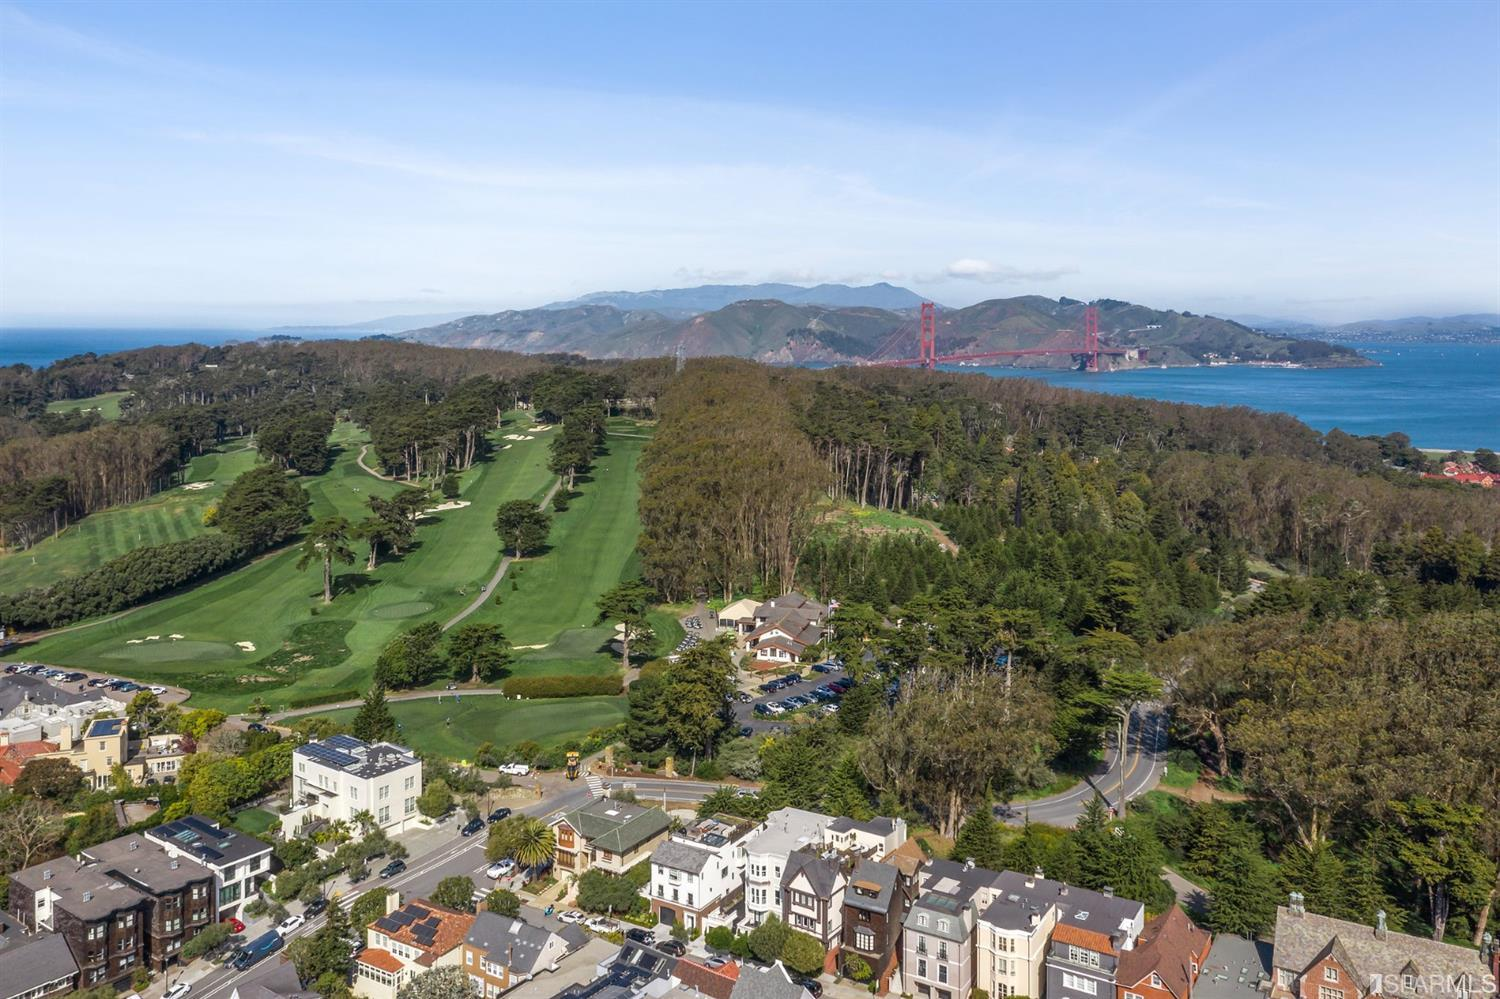 Verdant Presidio views form the backdrop for this exquisite Tudor style home with a coveted location on the Exclusive Presidio Wall. Sophistication and scale abounds, with soaring ceilings period details & rich hardwood floors. Currently configured as 2 units with additional flex studio space, perfect for a multi-generational family compound. Available for the 1st time in nearly 40 years, this elegant home affords an opportunity for your personal touches or creative reconfiguration to suit a more modern lifestyle. The framework includes oversized windows with Presidio views, plus an extensive rooftop deck. Located across from the Presidio National Park, Presidio Golf and numerous walking trails in the Presidio as well as a short walk to the restaurants and shops on Sacramento St and in Laurel Village. This is truly a rare offering and opportunity for someone looking for a San Francisco treasure.